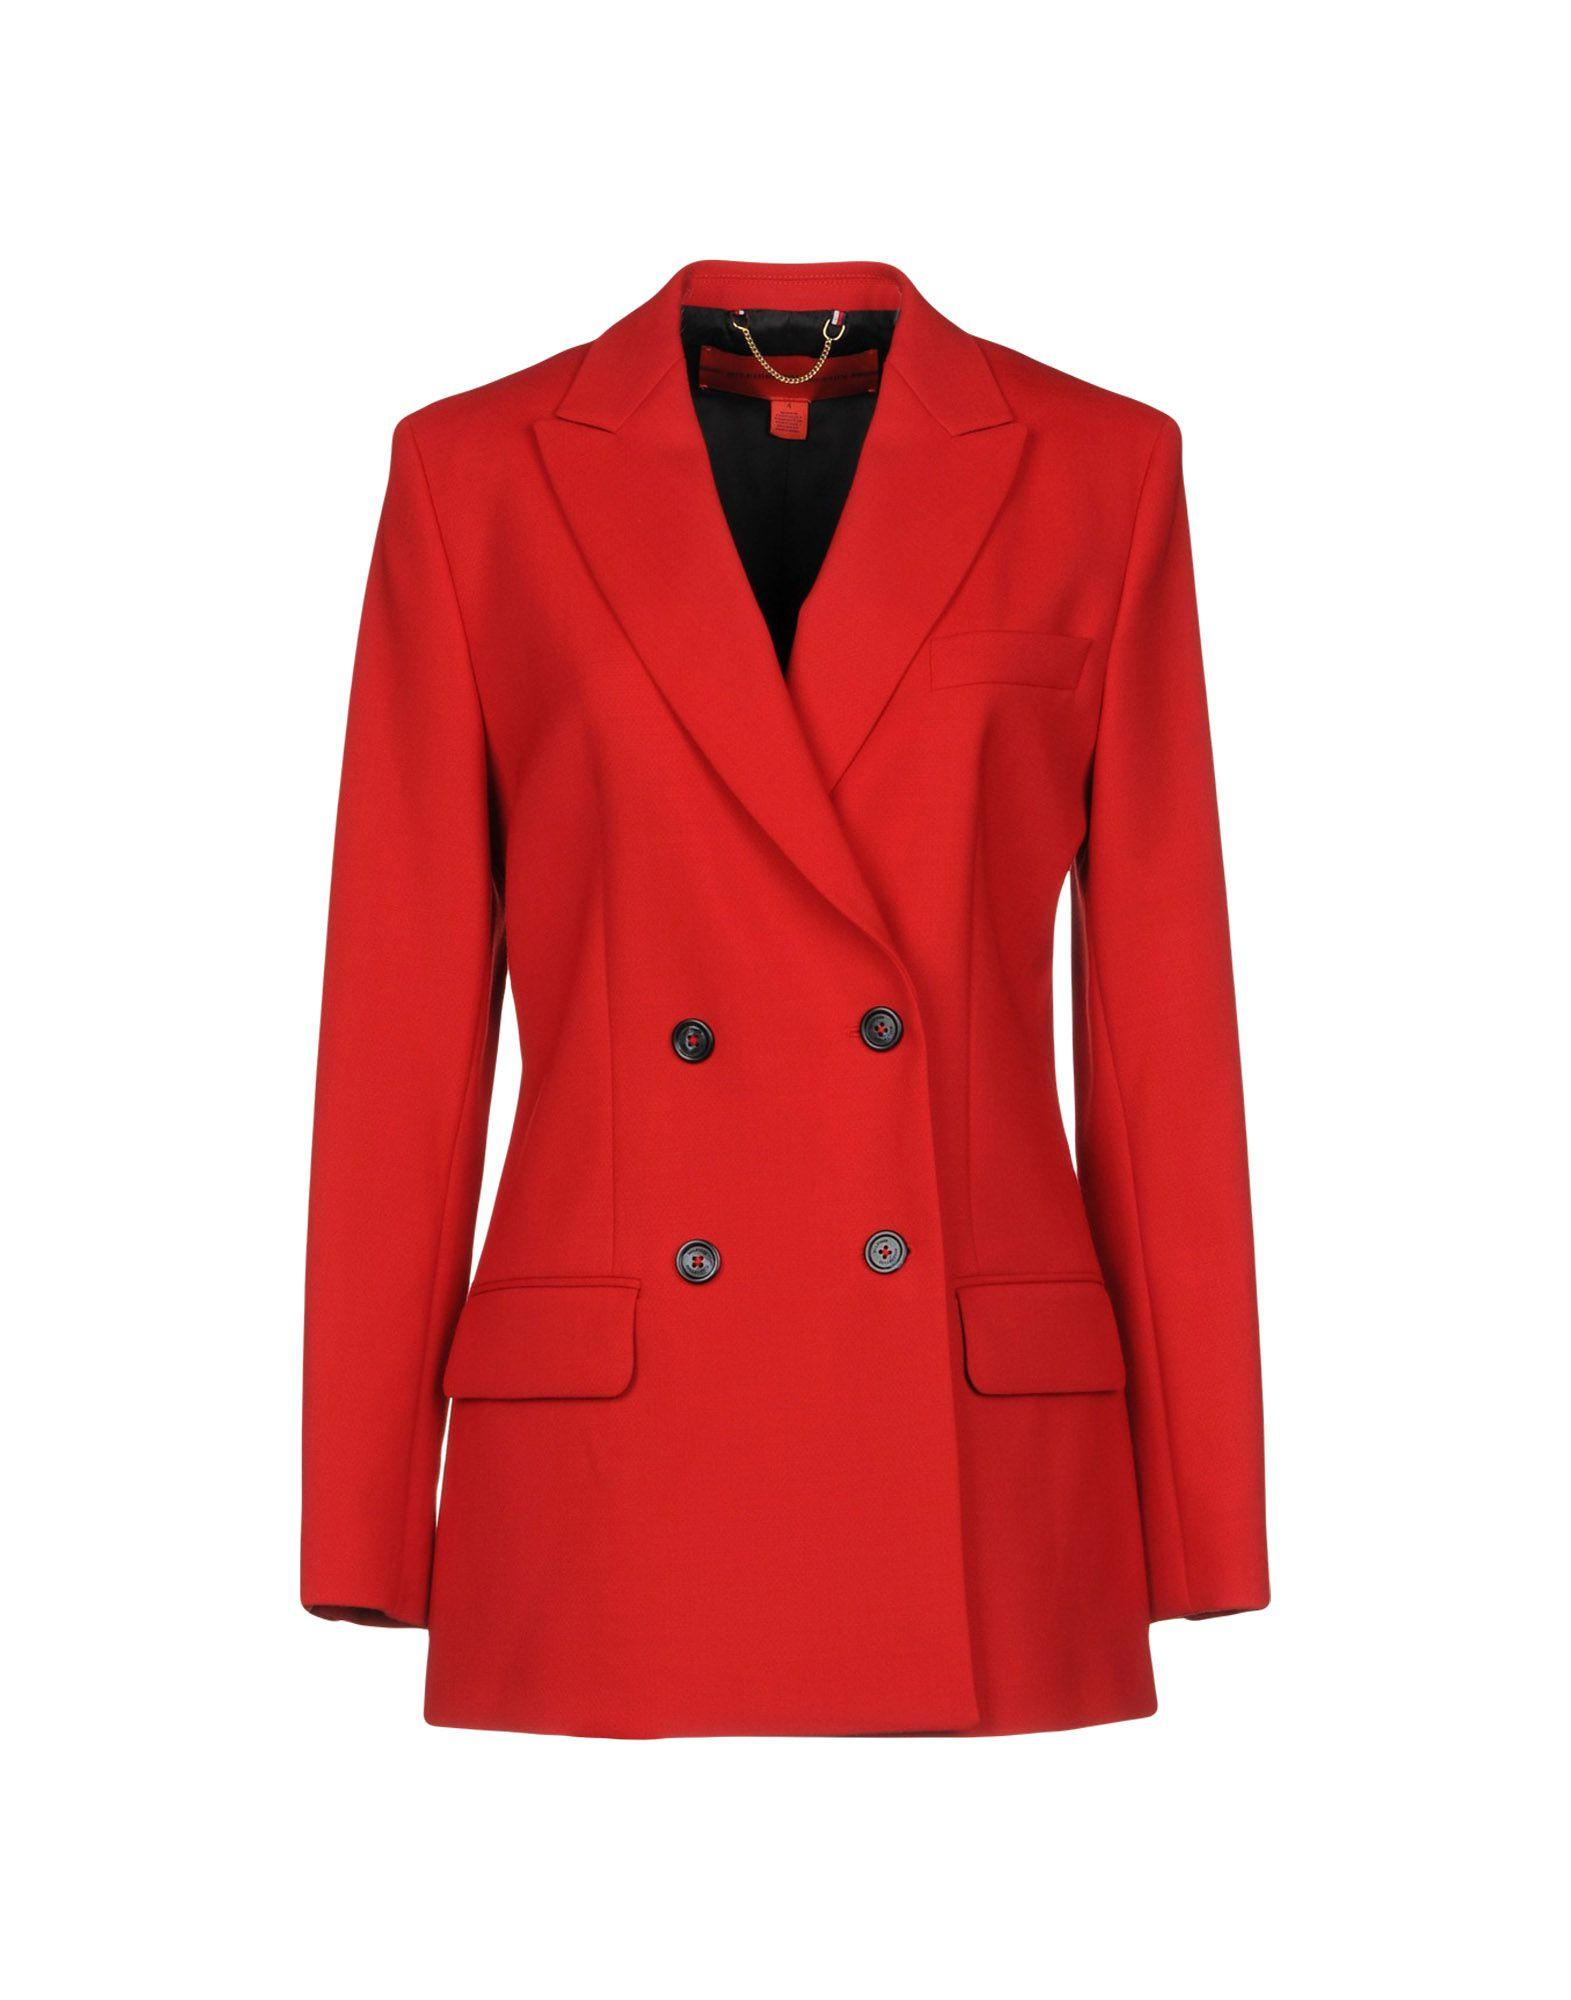 Tommy Hilfiger Blazer In Red